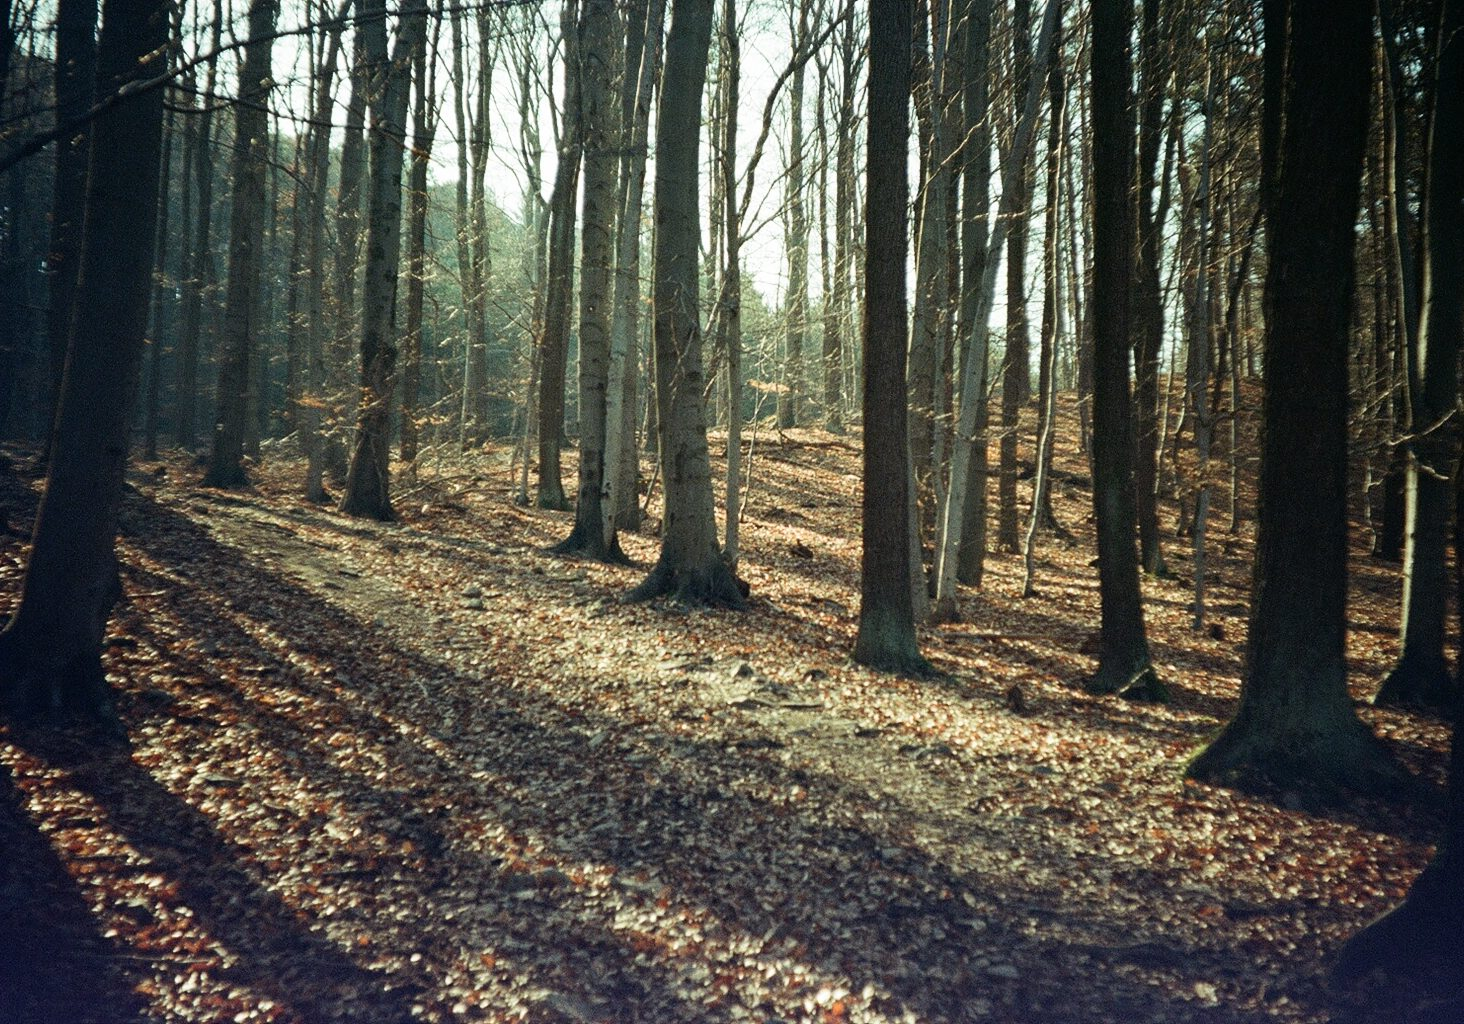 forest by Marketa on flickr